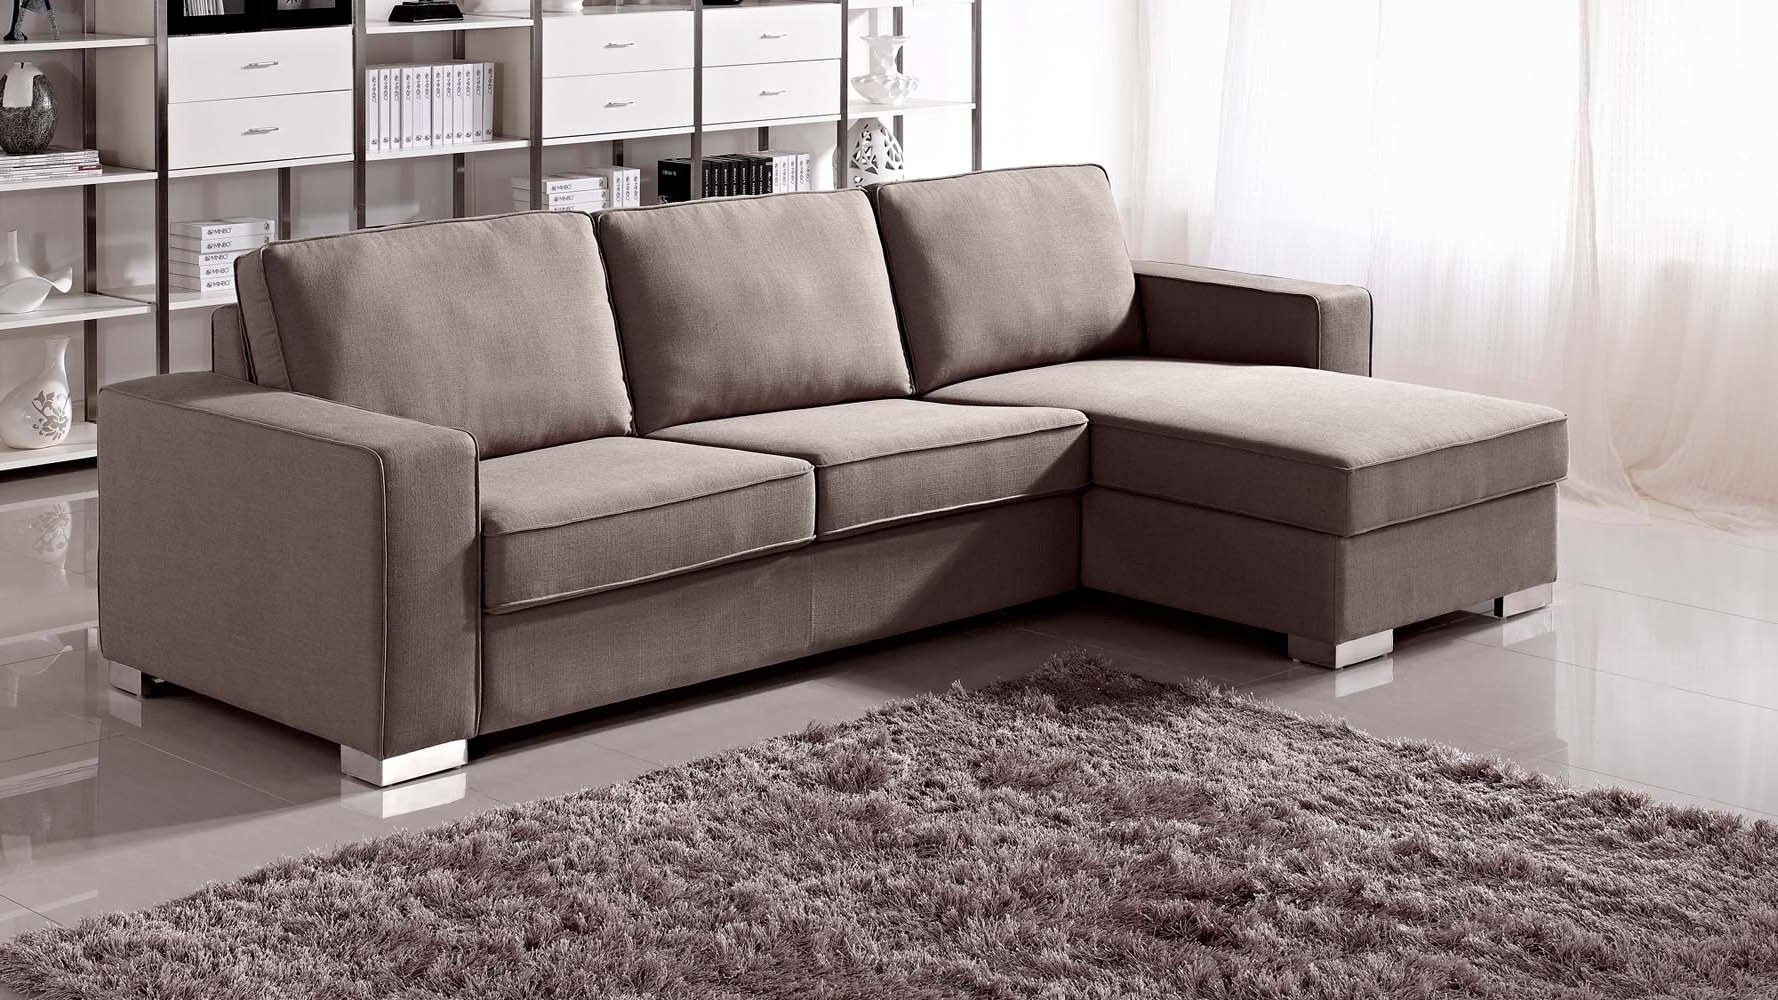 2019 L Shaped Sectional Sleeper Sofas Regarding Innovative Sofa Sleeper Sectionals Beautiful Interior Design Style (View 12 of 20)